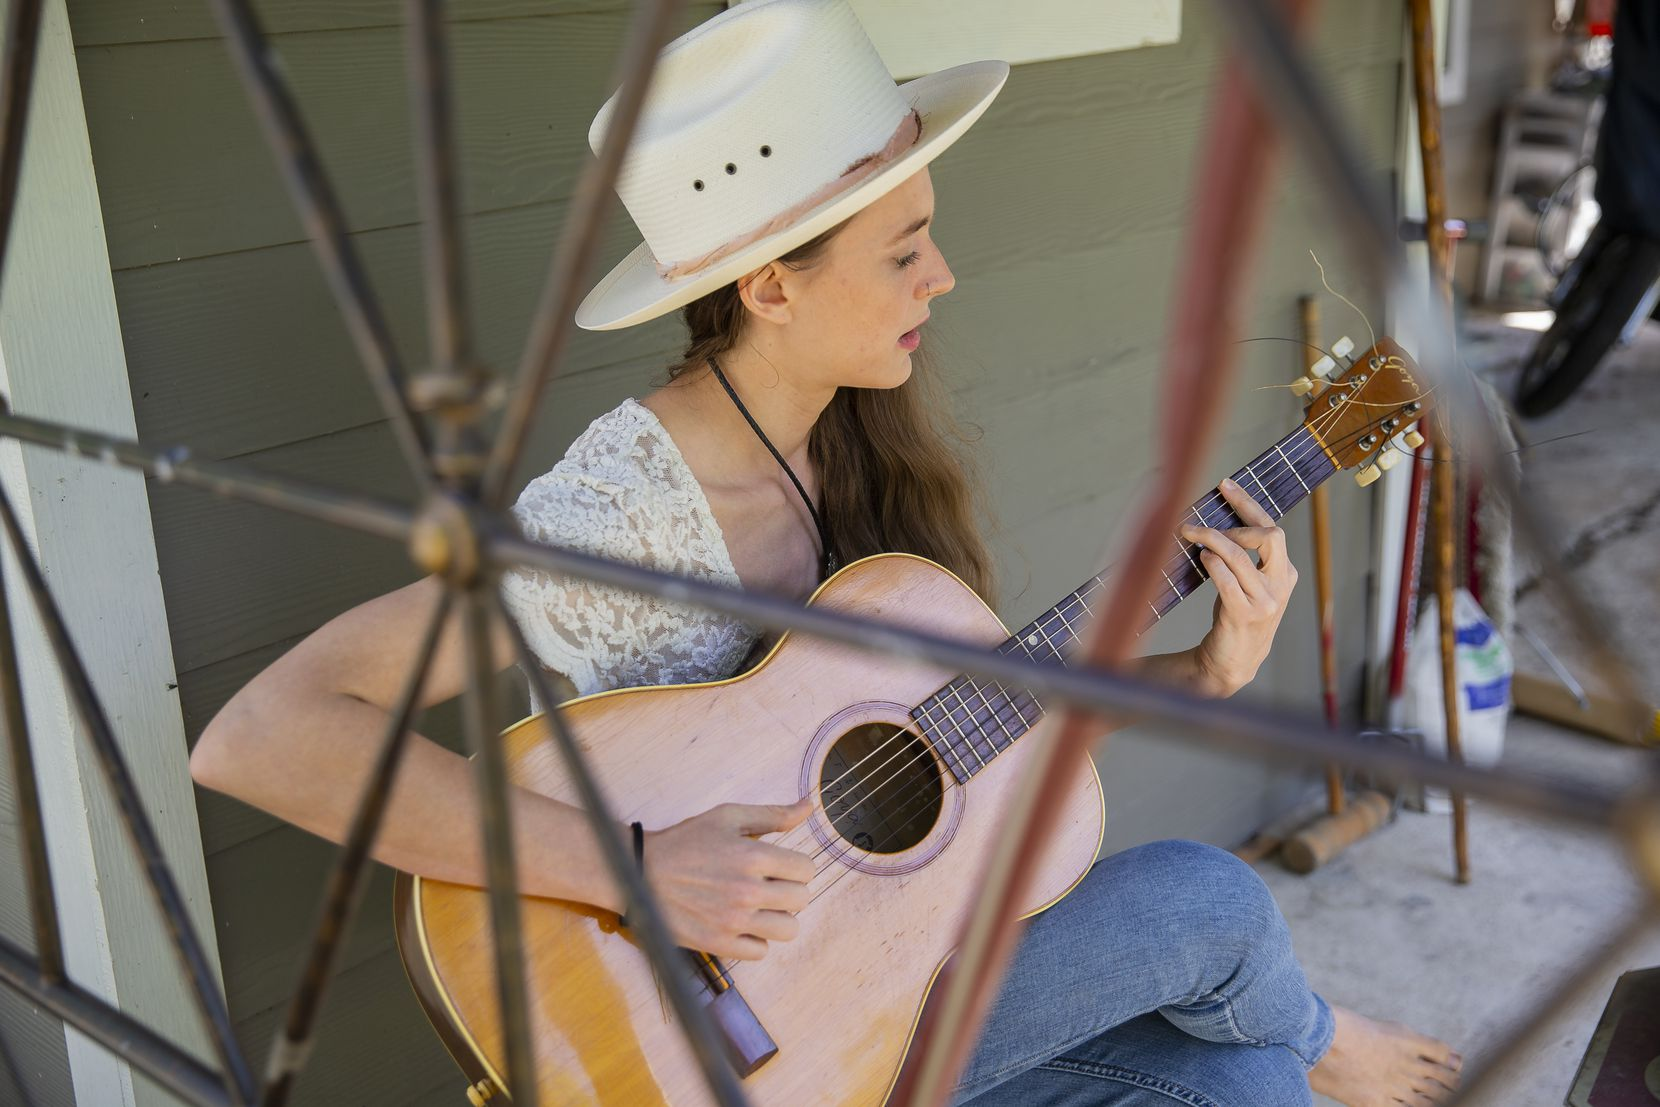 Musician and yoga instructor Jenna Clark plays guitar in the backyard of her Oak Cliff home. Clark lost her job as a result of the coronavirus pandemic.